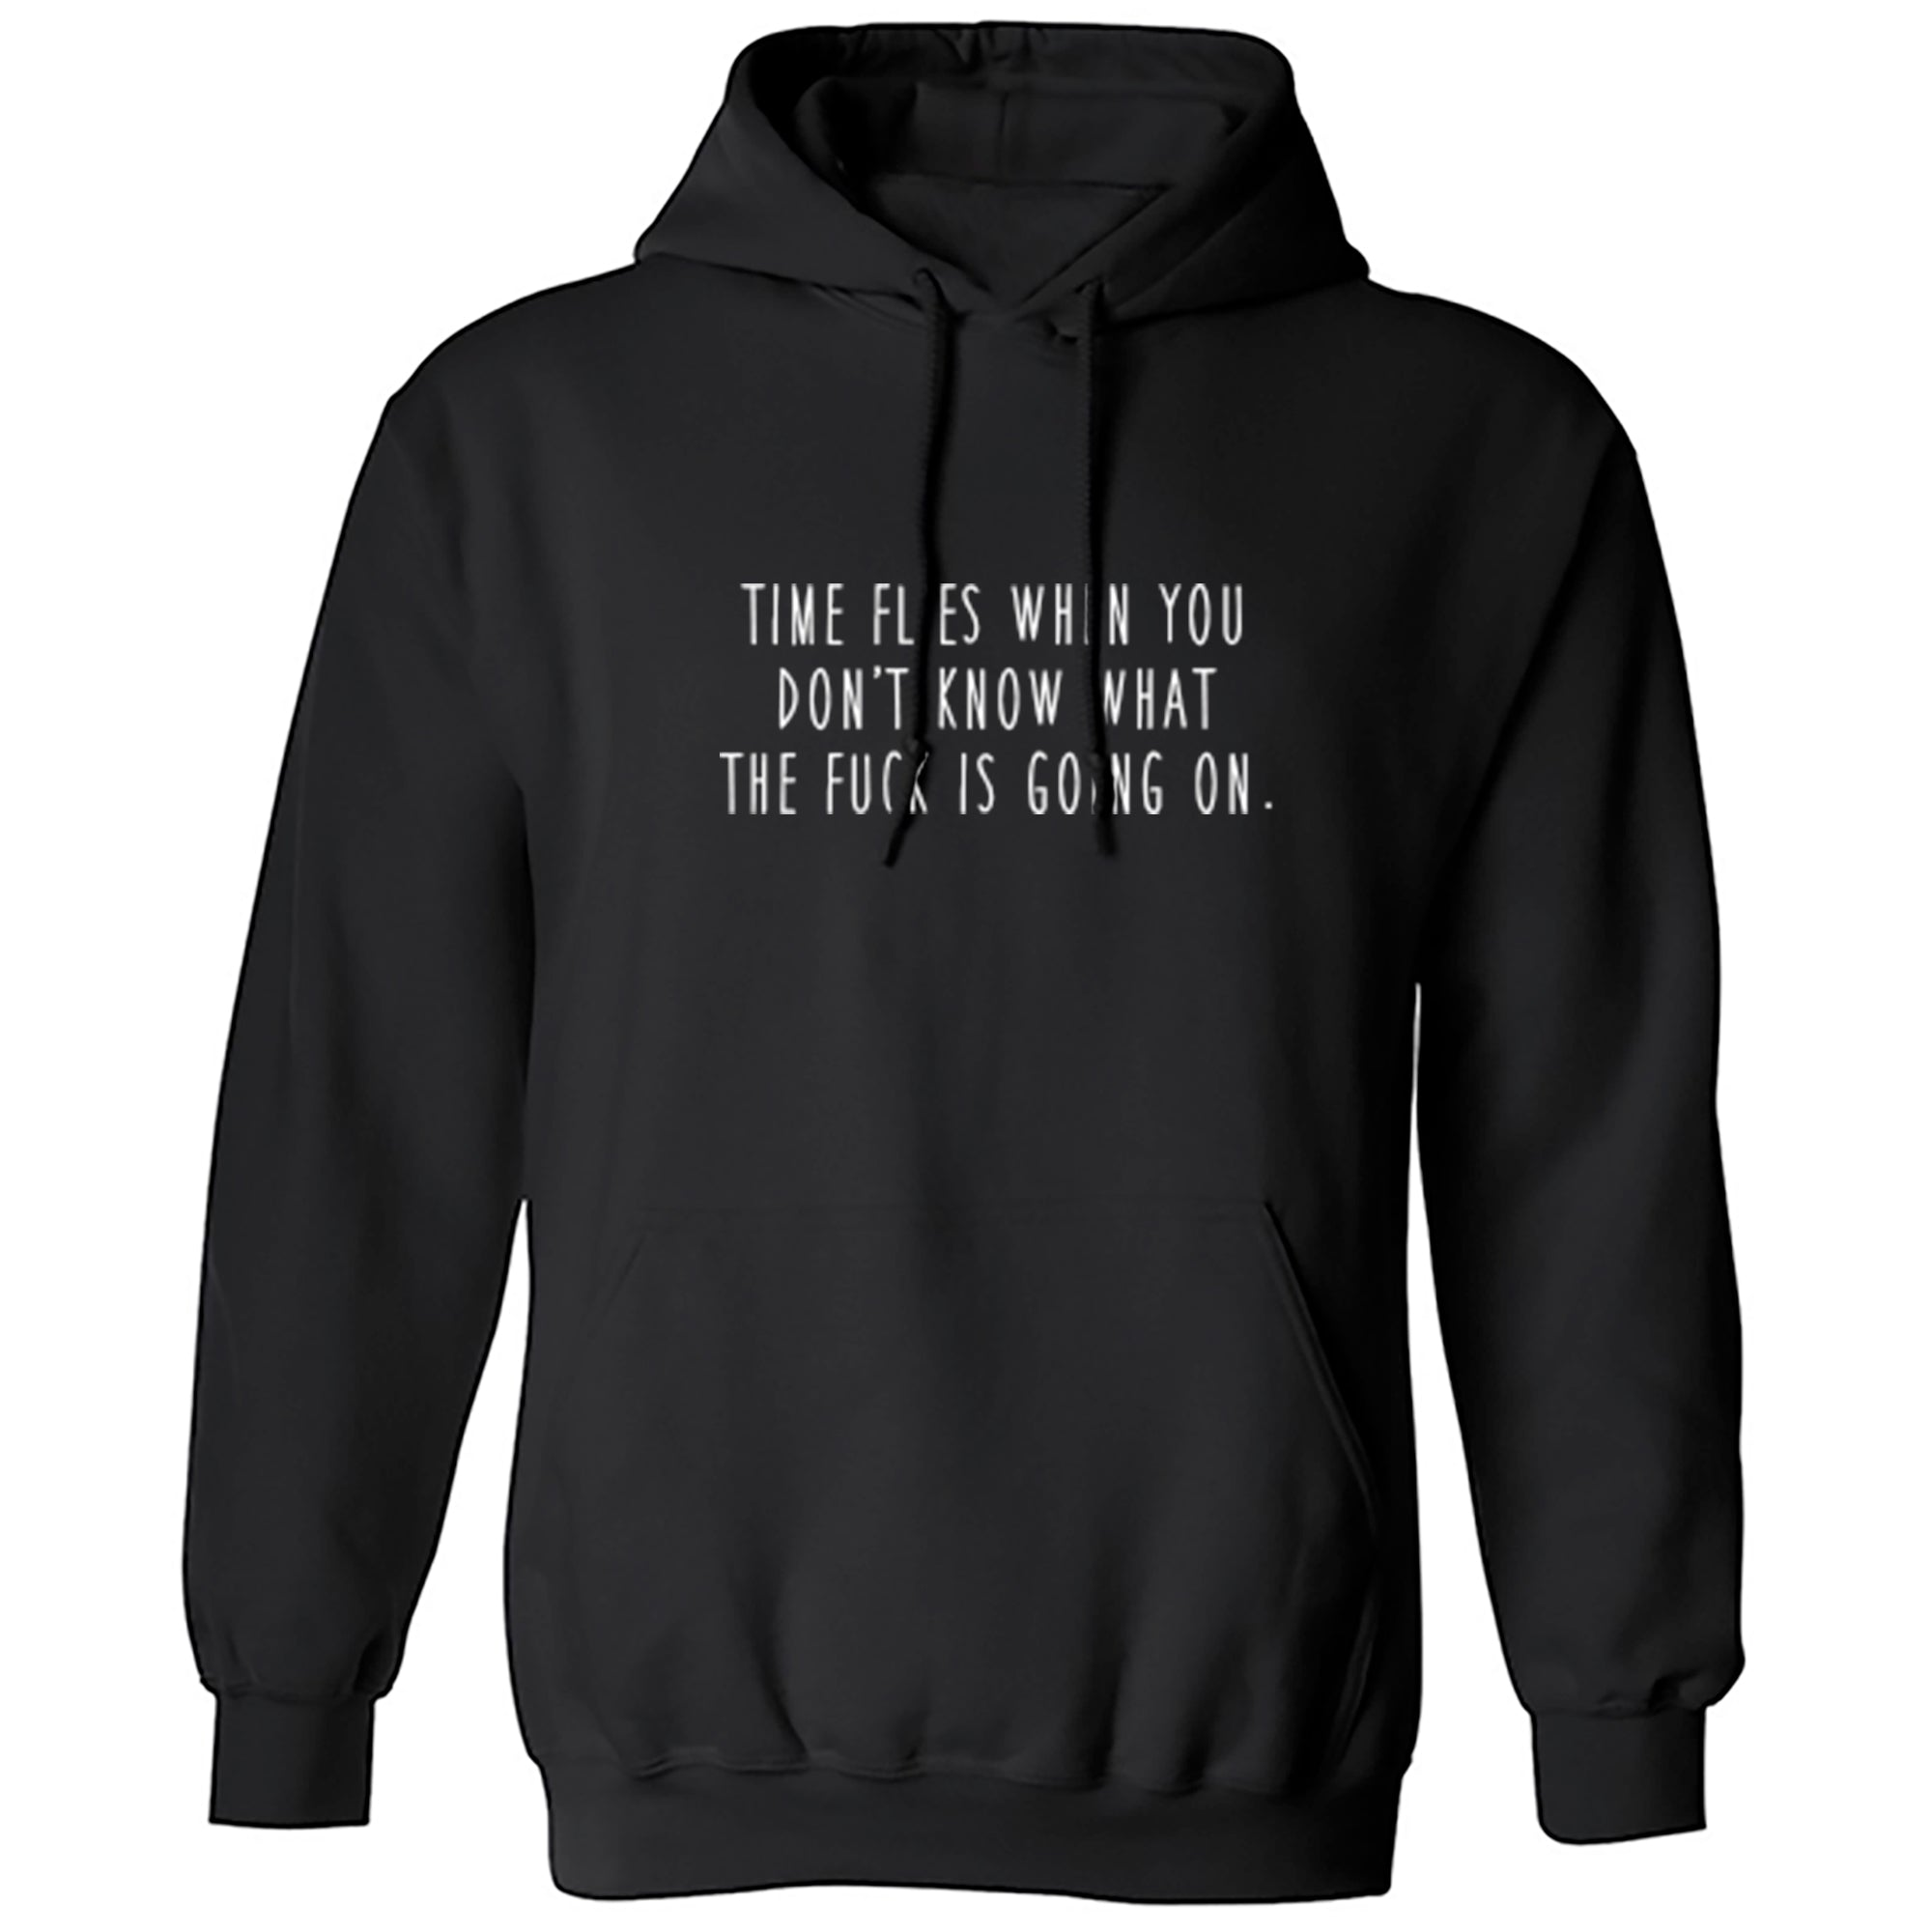 Time Flies When You Don't Know What The Fuck Is Going On Unisex Hoodie S1135 - Illustrated Identity Ltd.